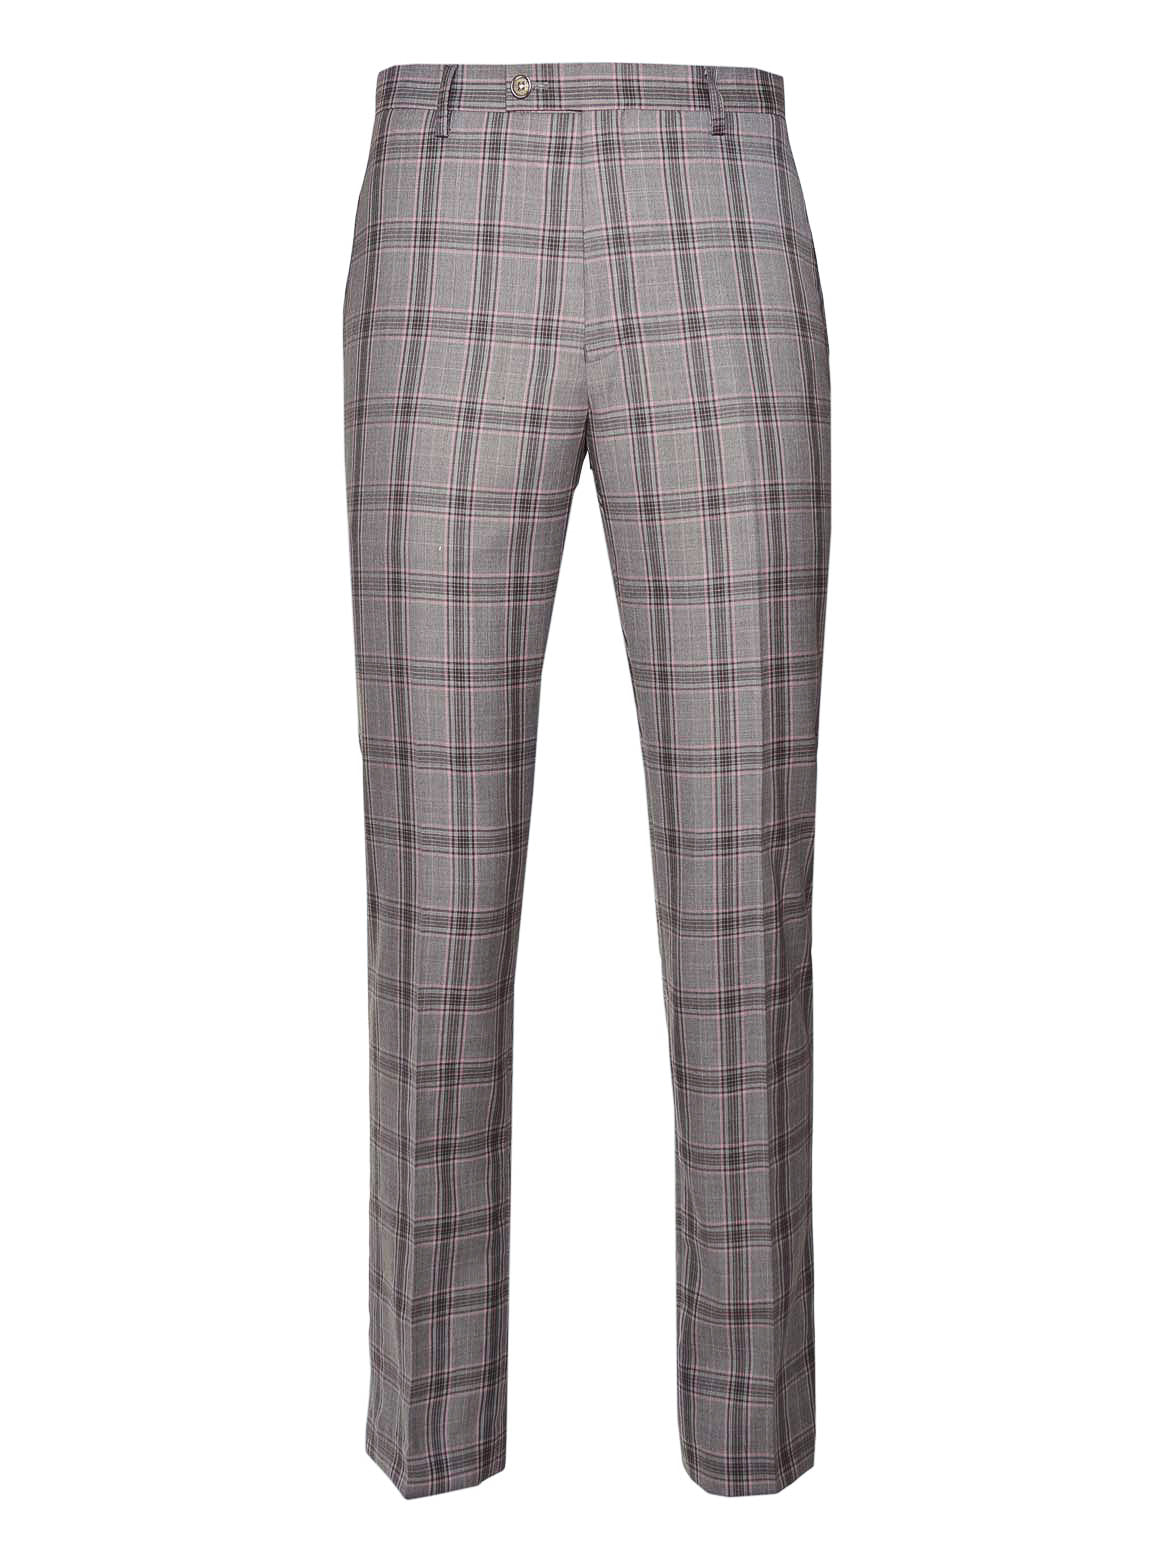 Ltd Edition Downing Pants - Slim - Light Pink Grey Plaid